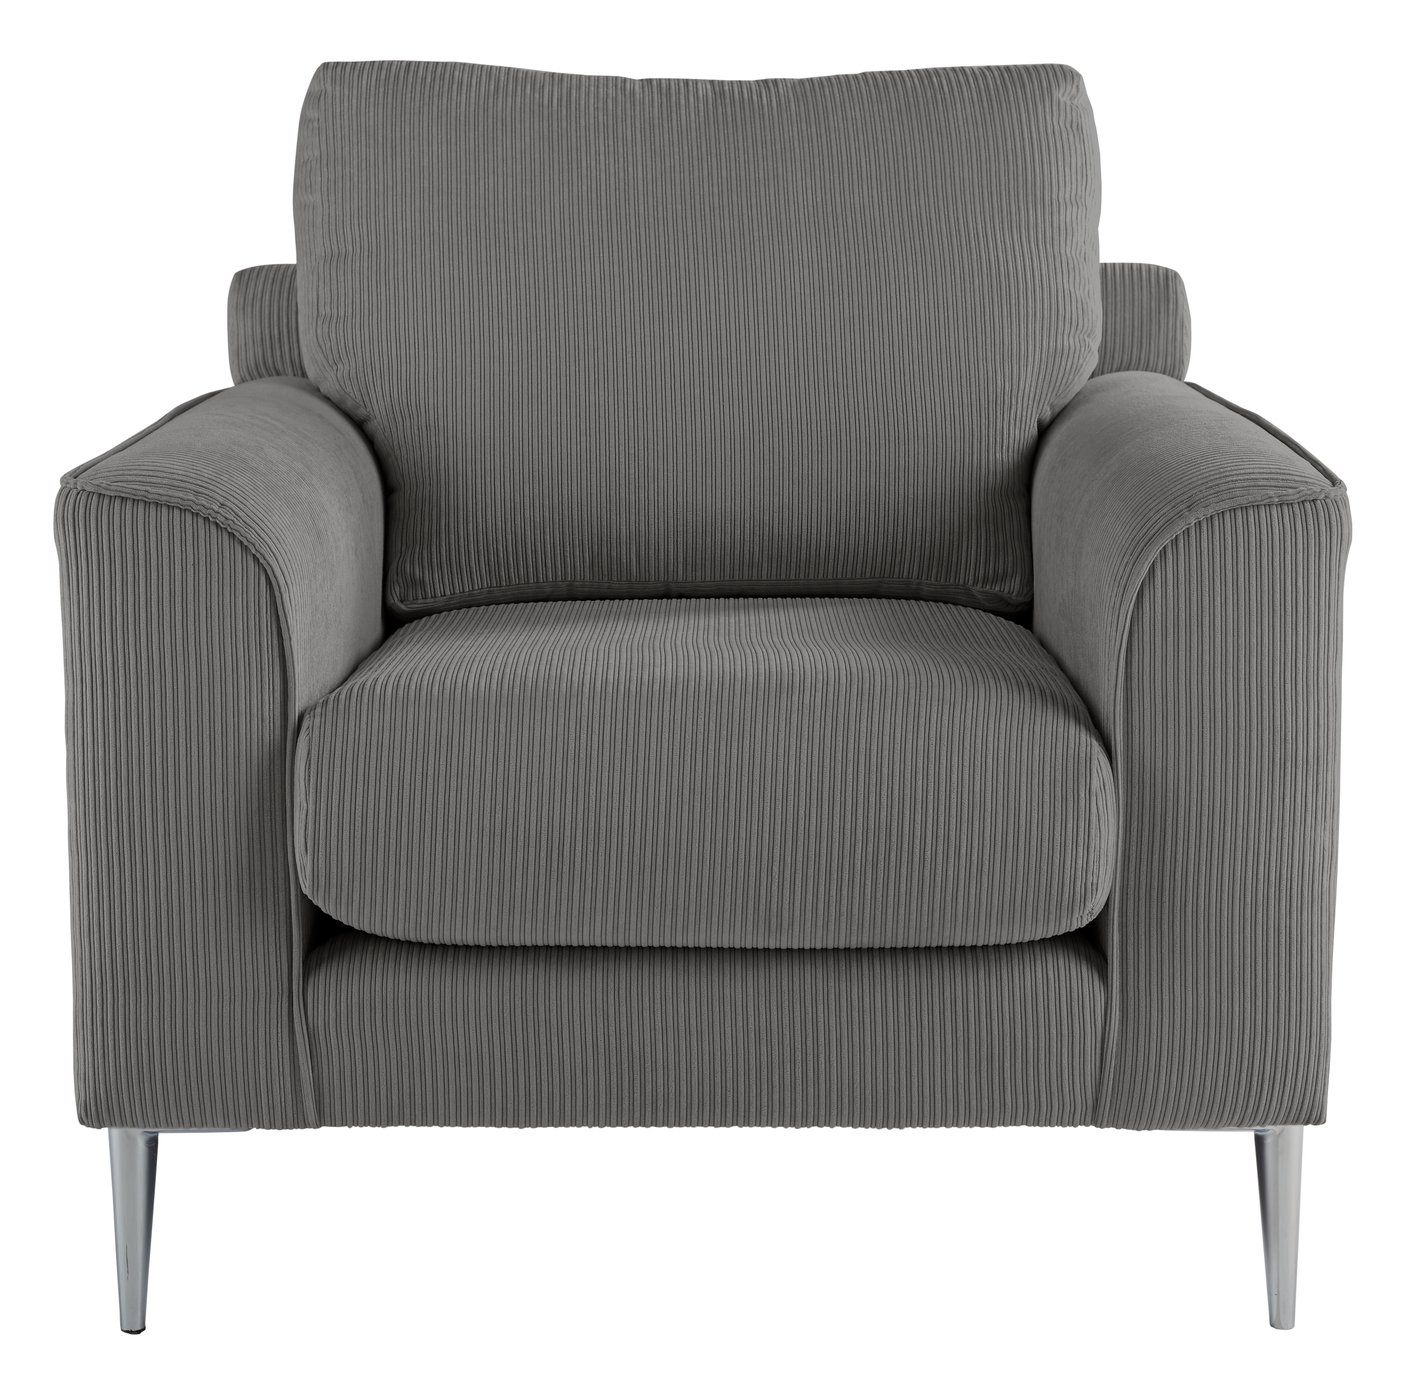 Argos Home Beckett Fabric Armchair - Charcoal